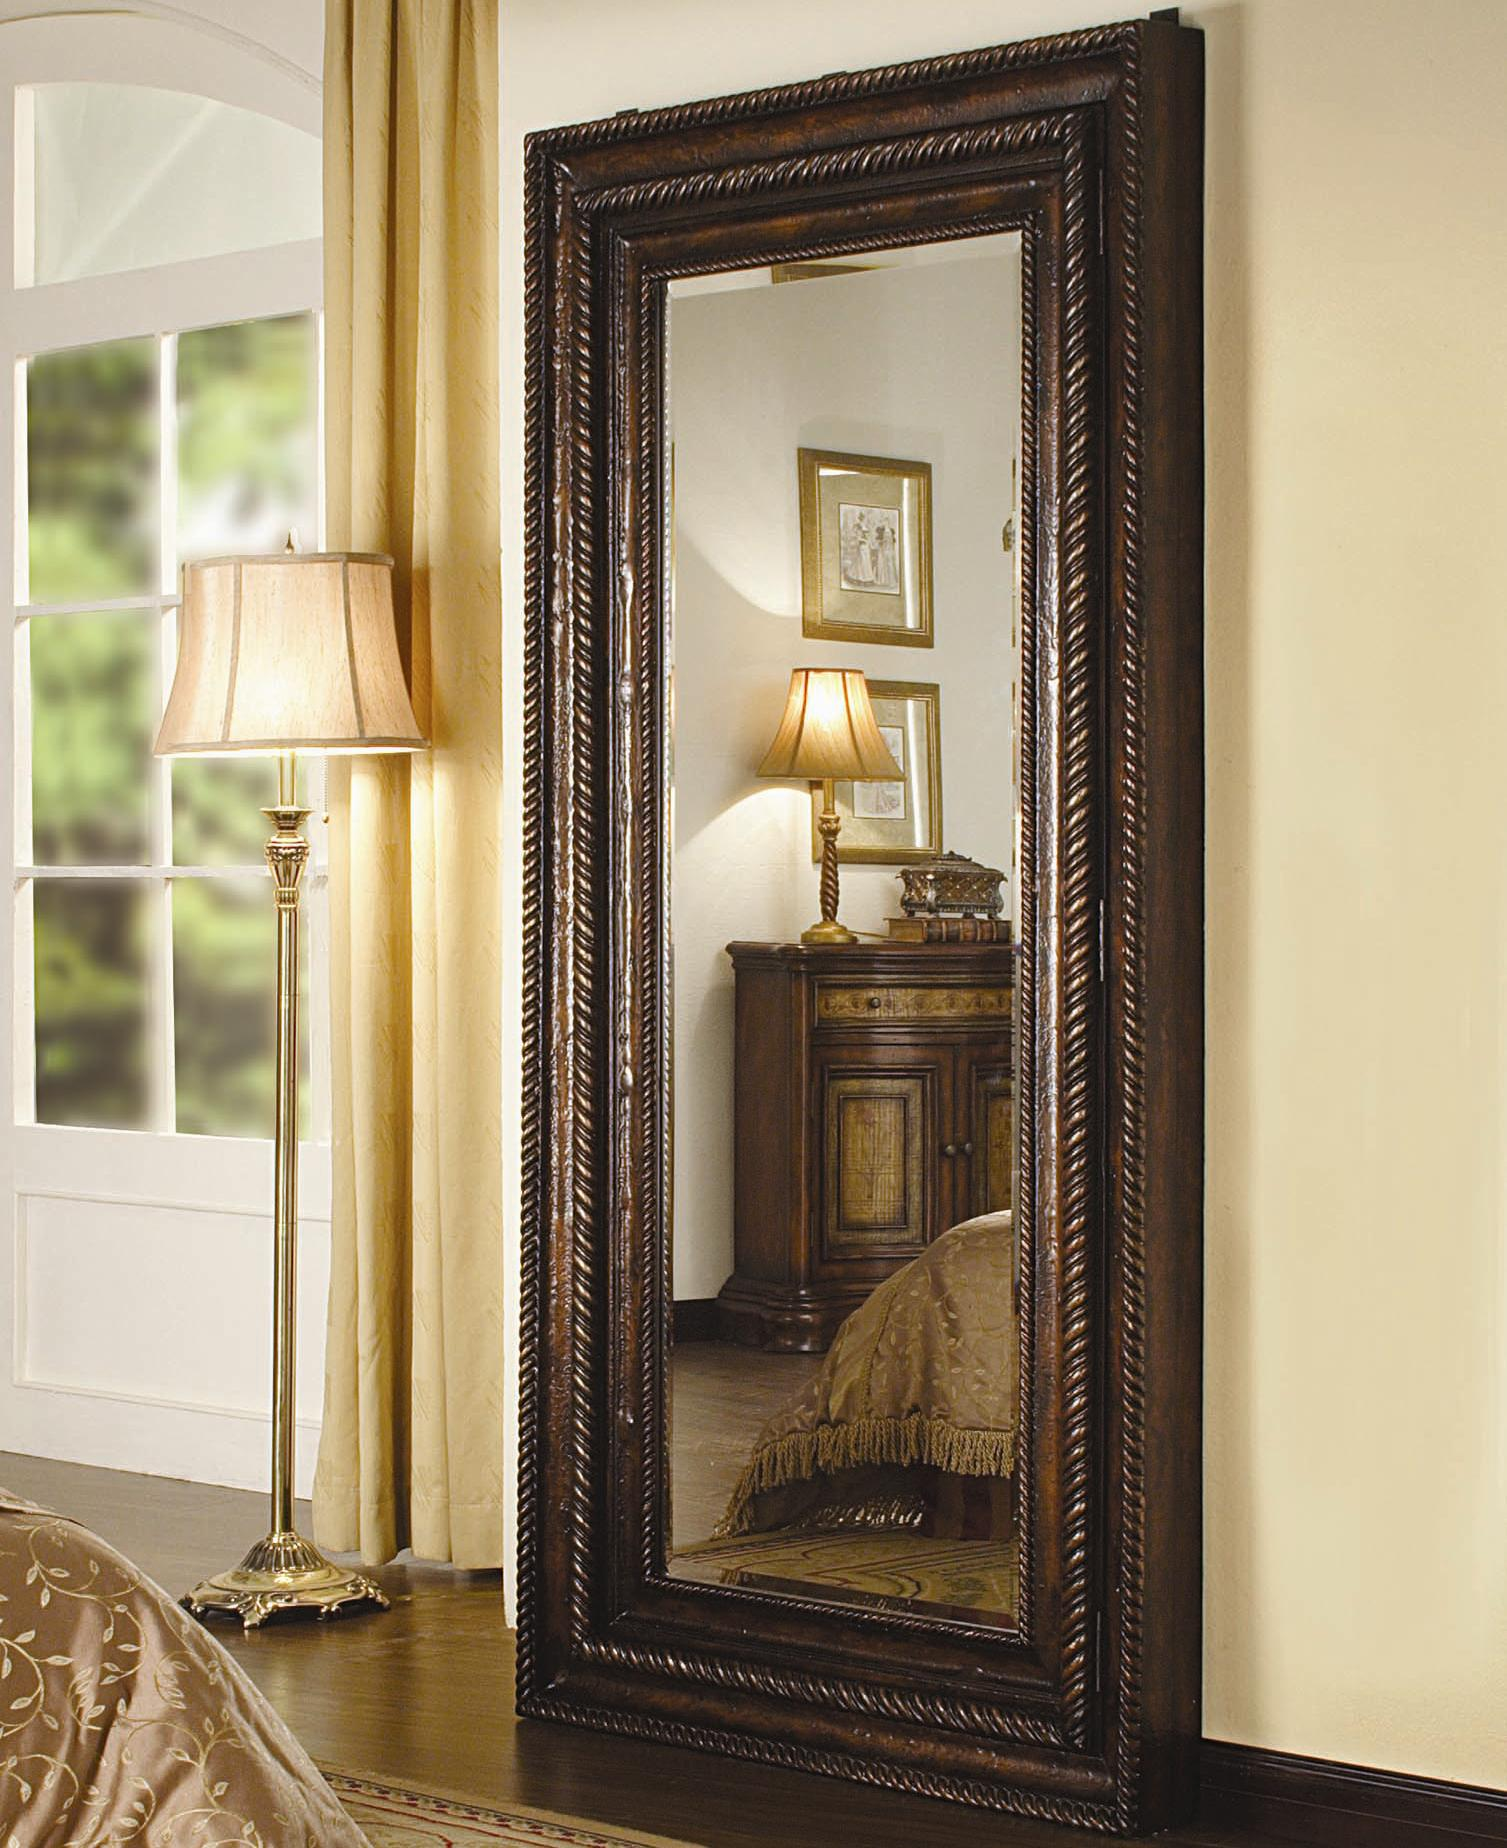 With Full Length Wall Mirror Storage : ... Seven Seas Floor Mirror with Jewelry Storage - Item Number: 500-50-656